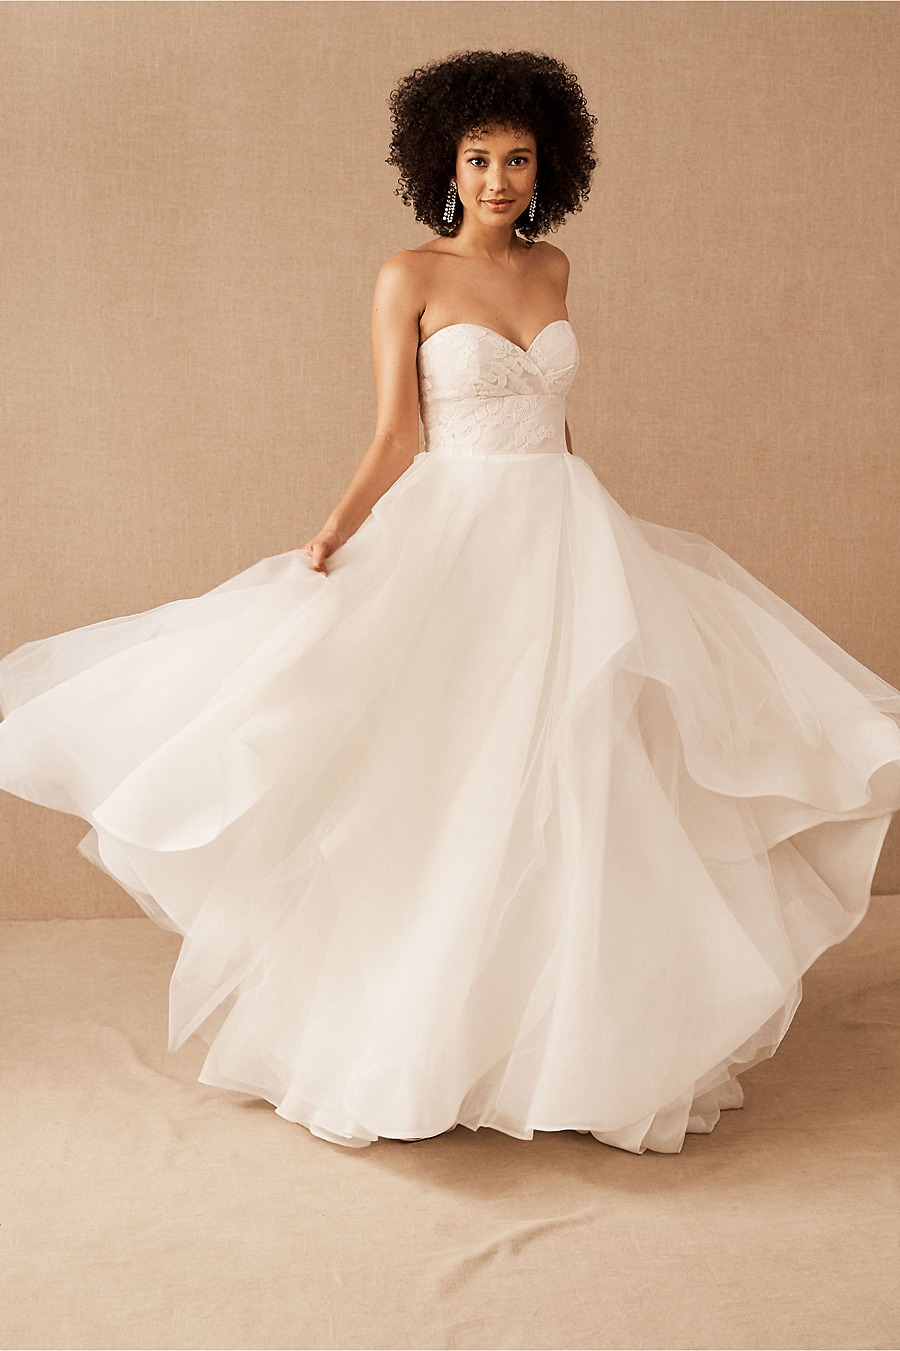 destination wedding dresses_19